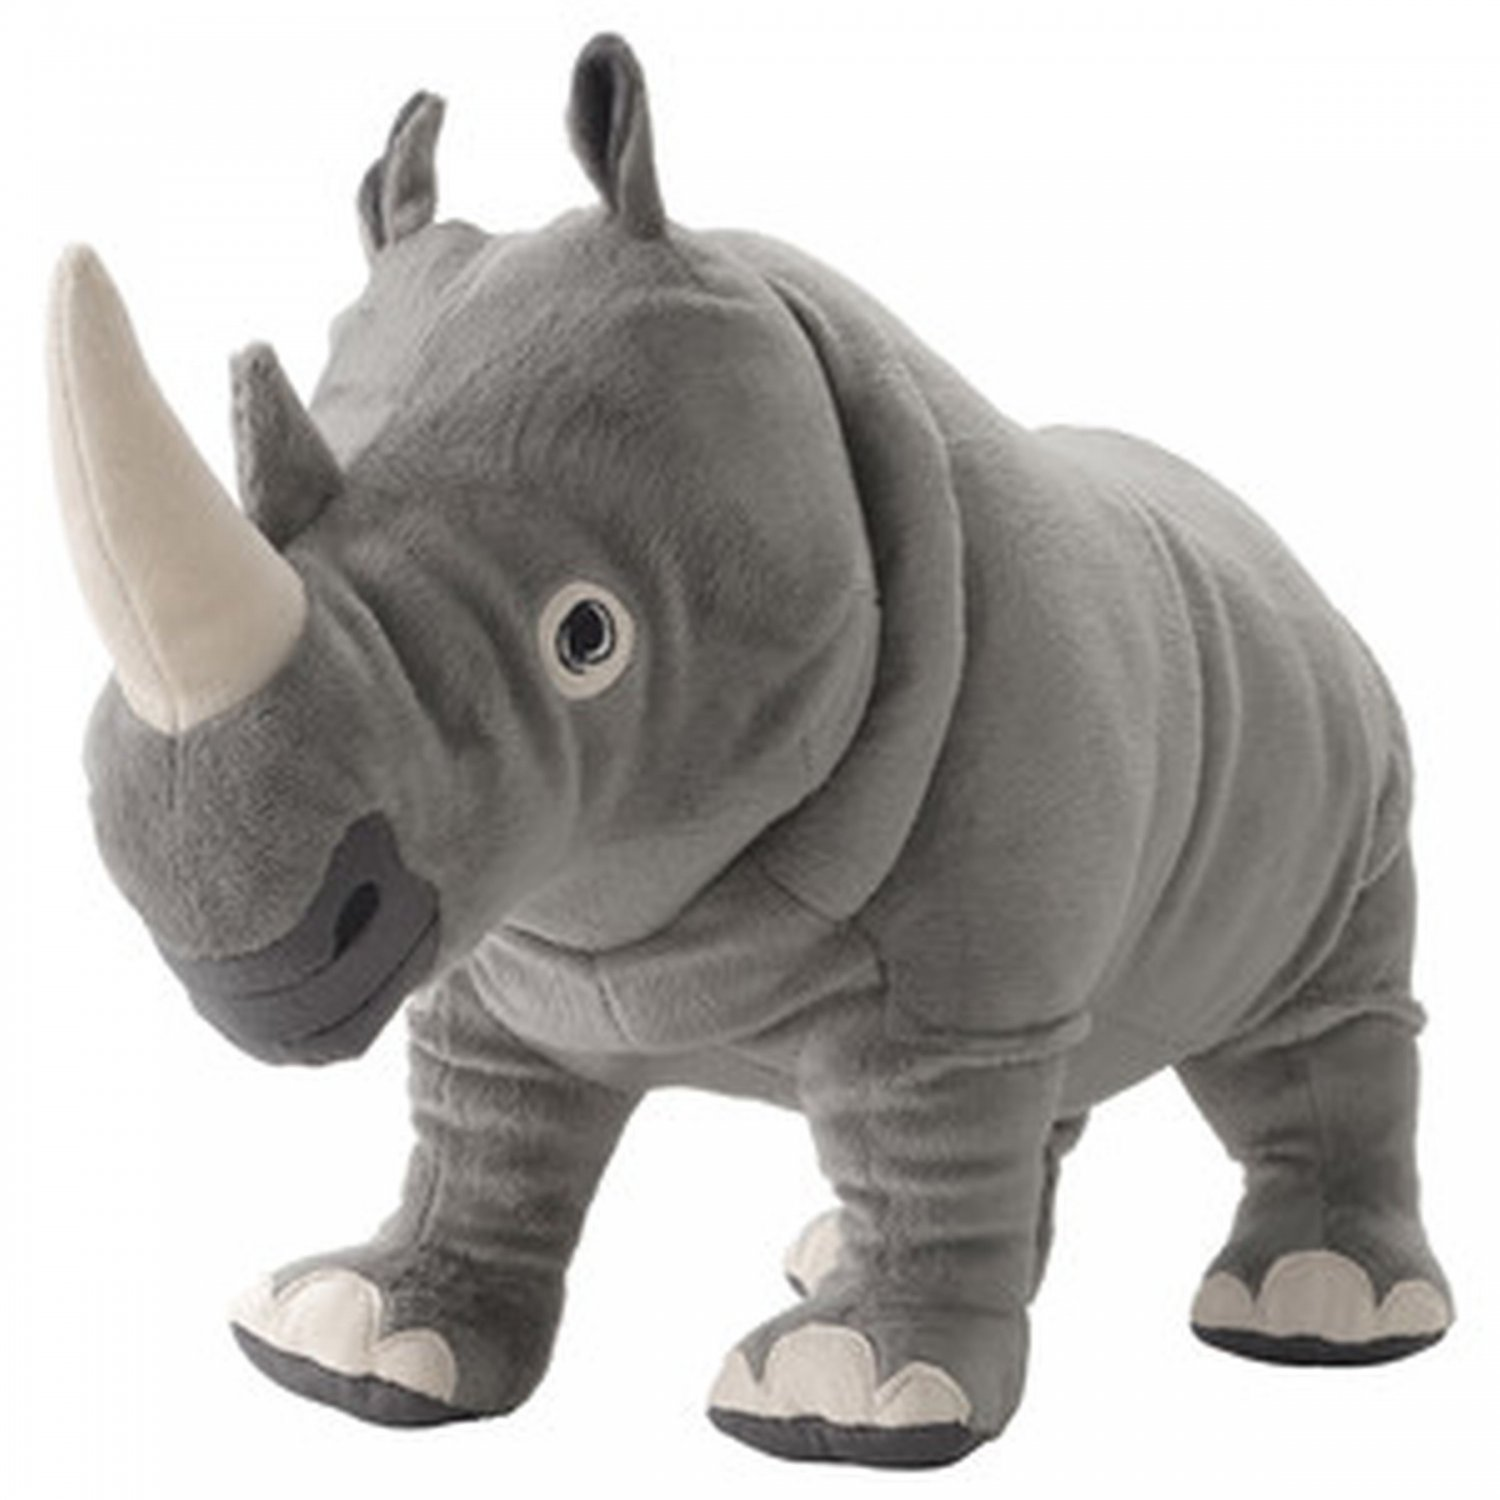 IKEA Onskad RHINO Rhinoceros Soft Plush Toy Gray �NSKAD Animal Xmas